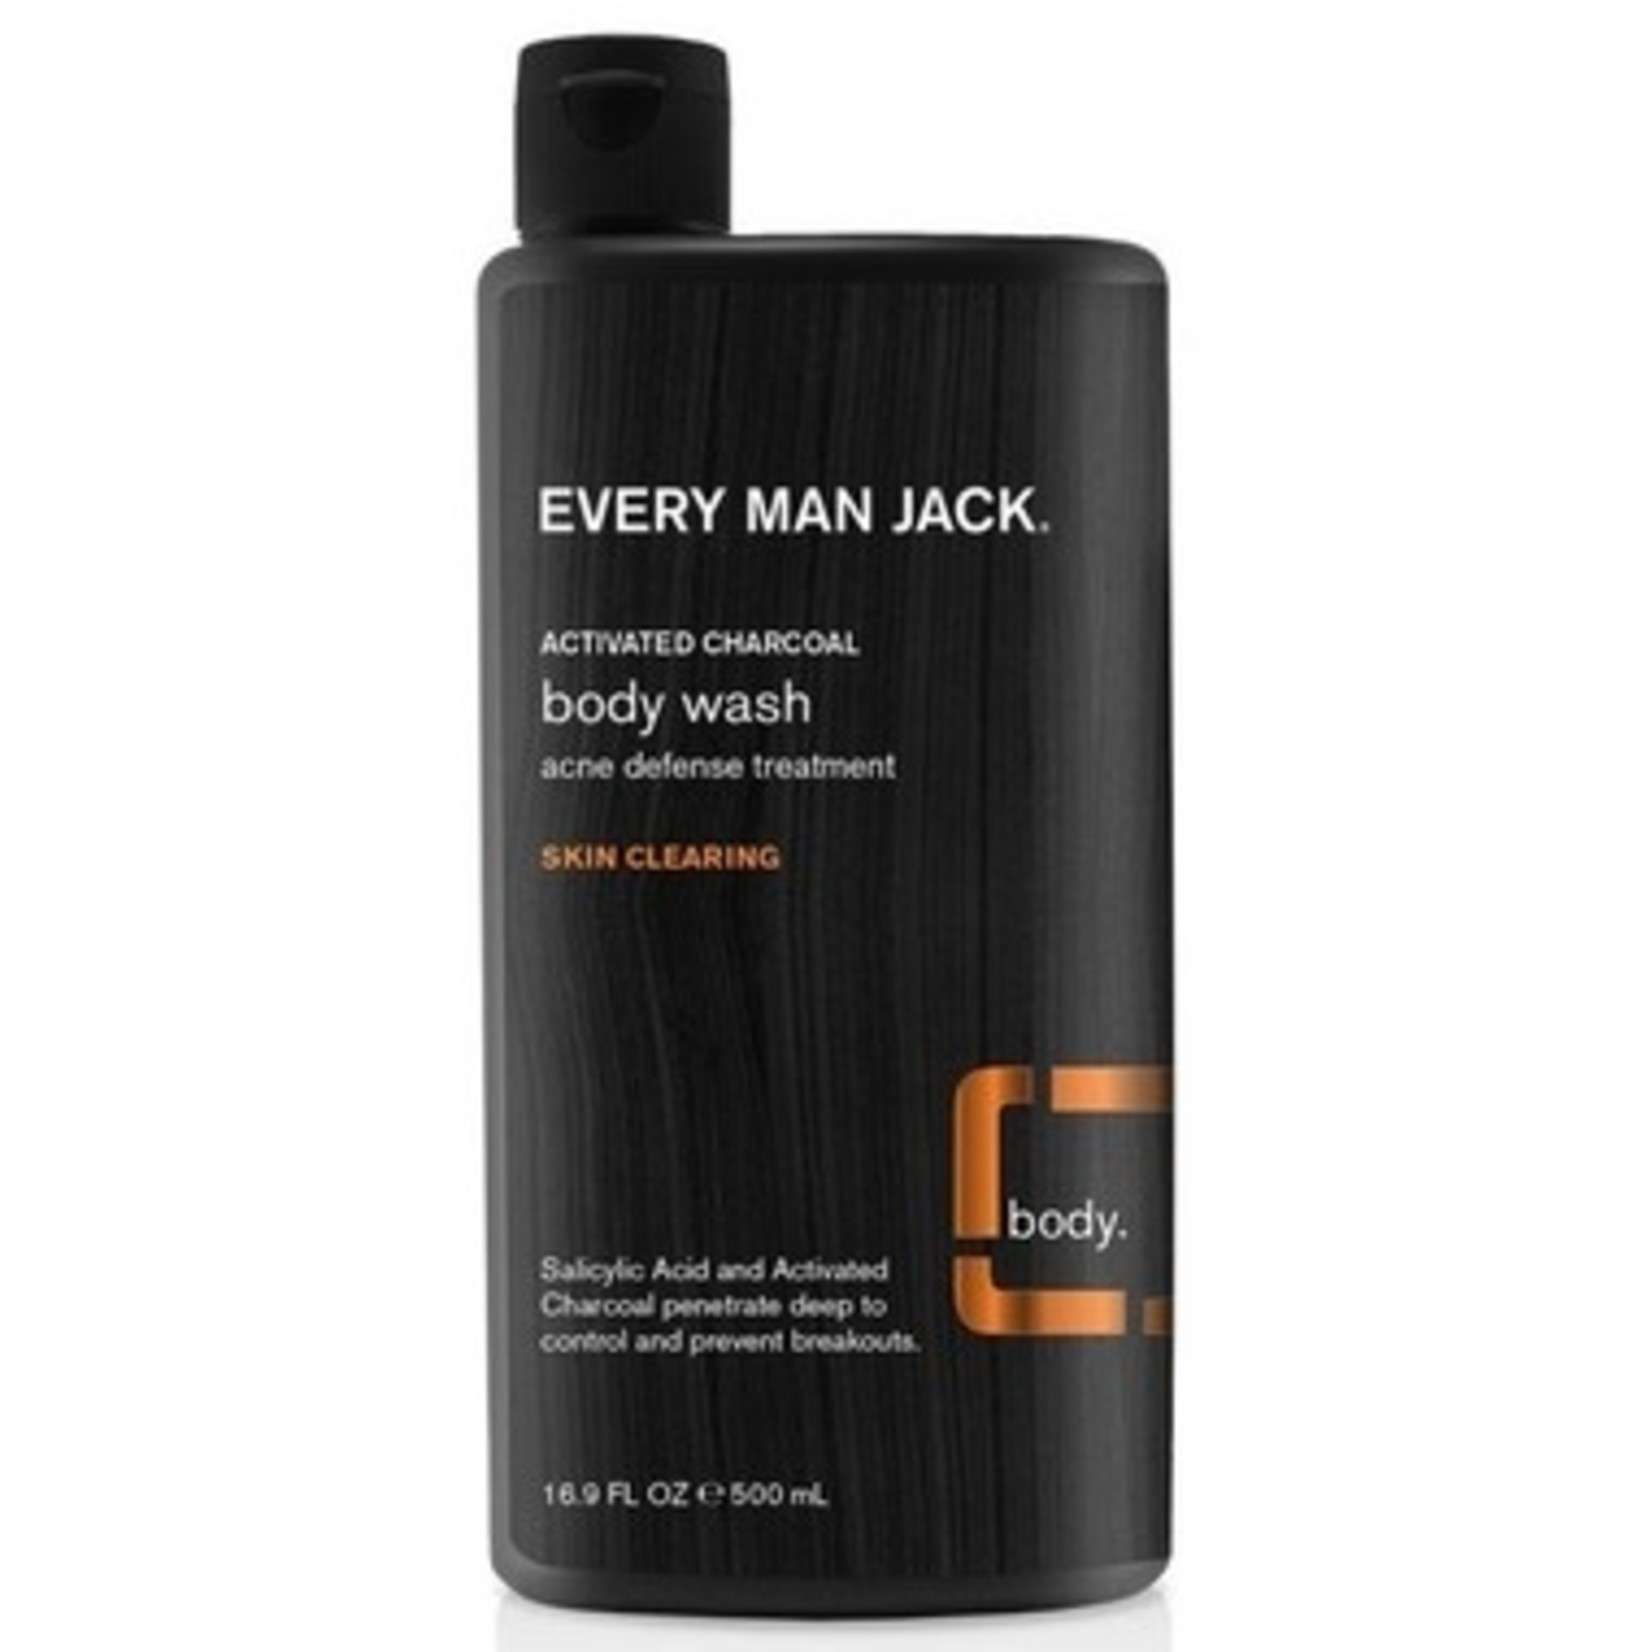 Every Man Jack Every Man Jack Body Wash Activated Charcoal 500ml